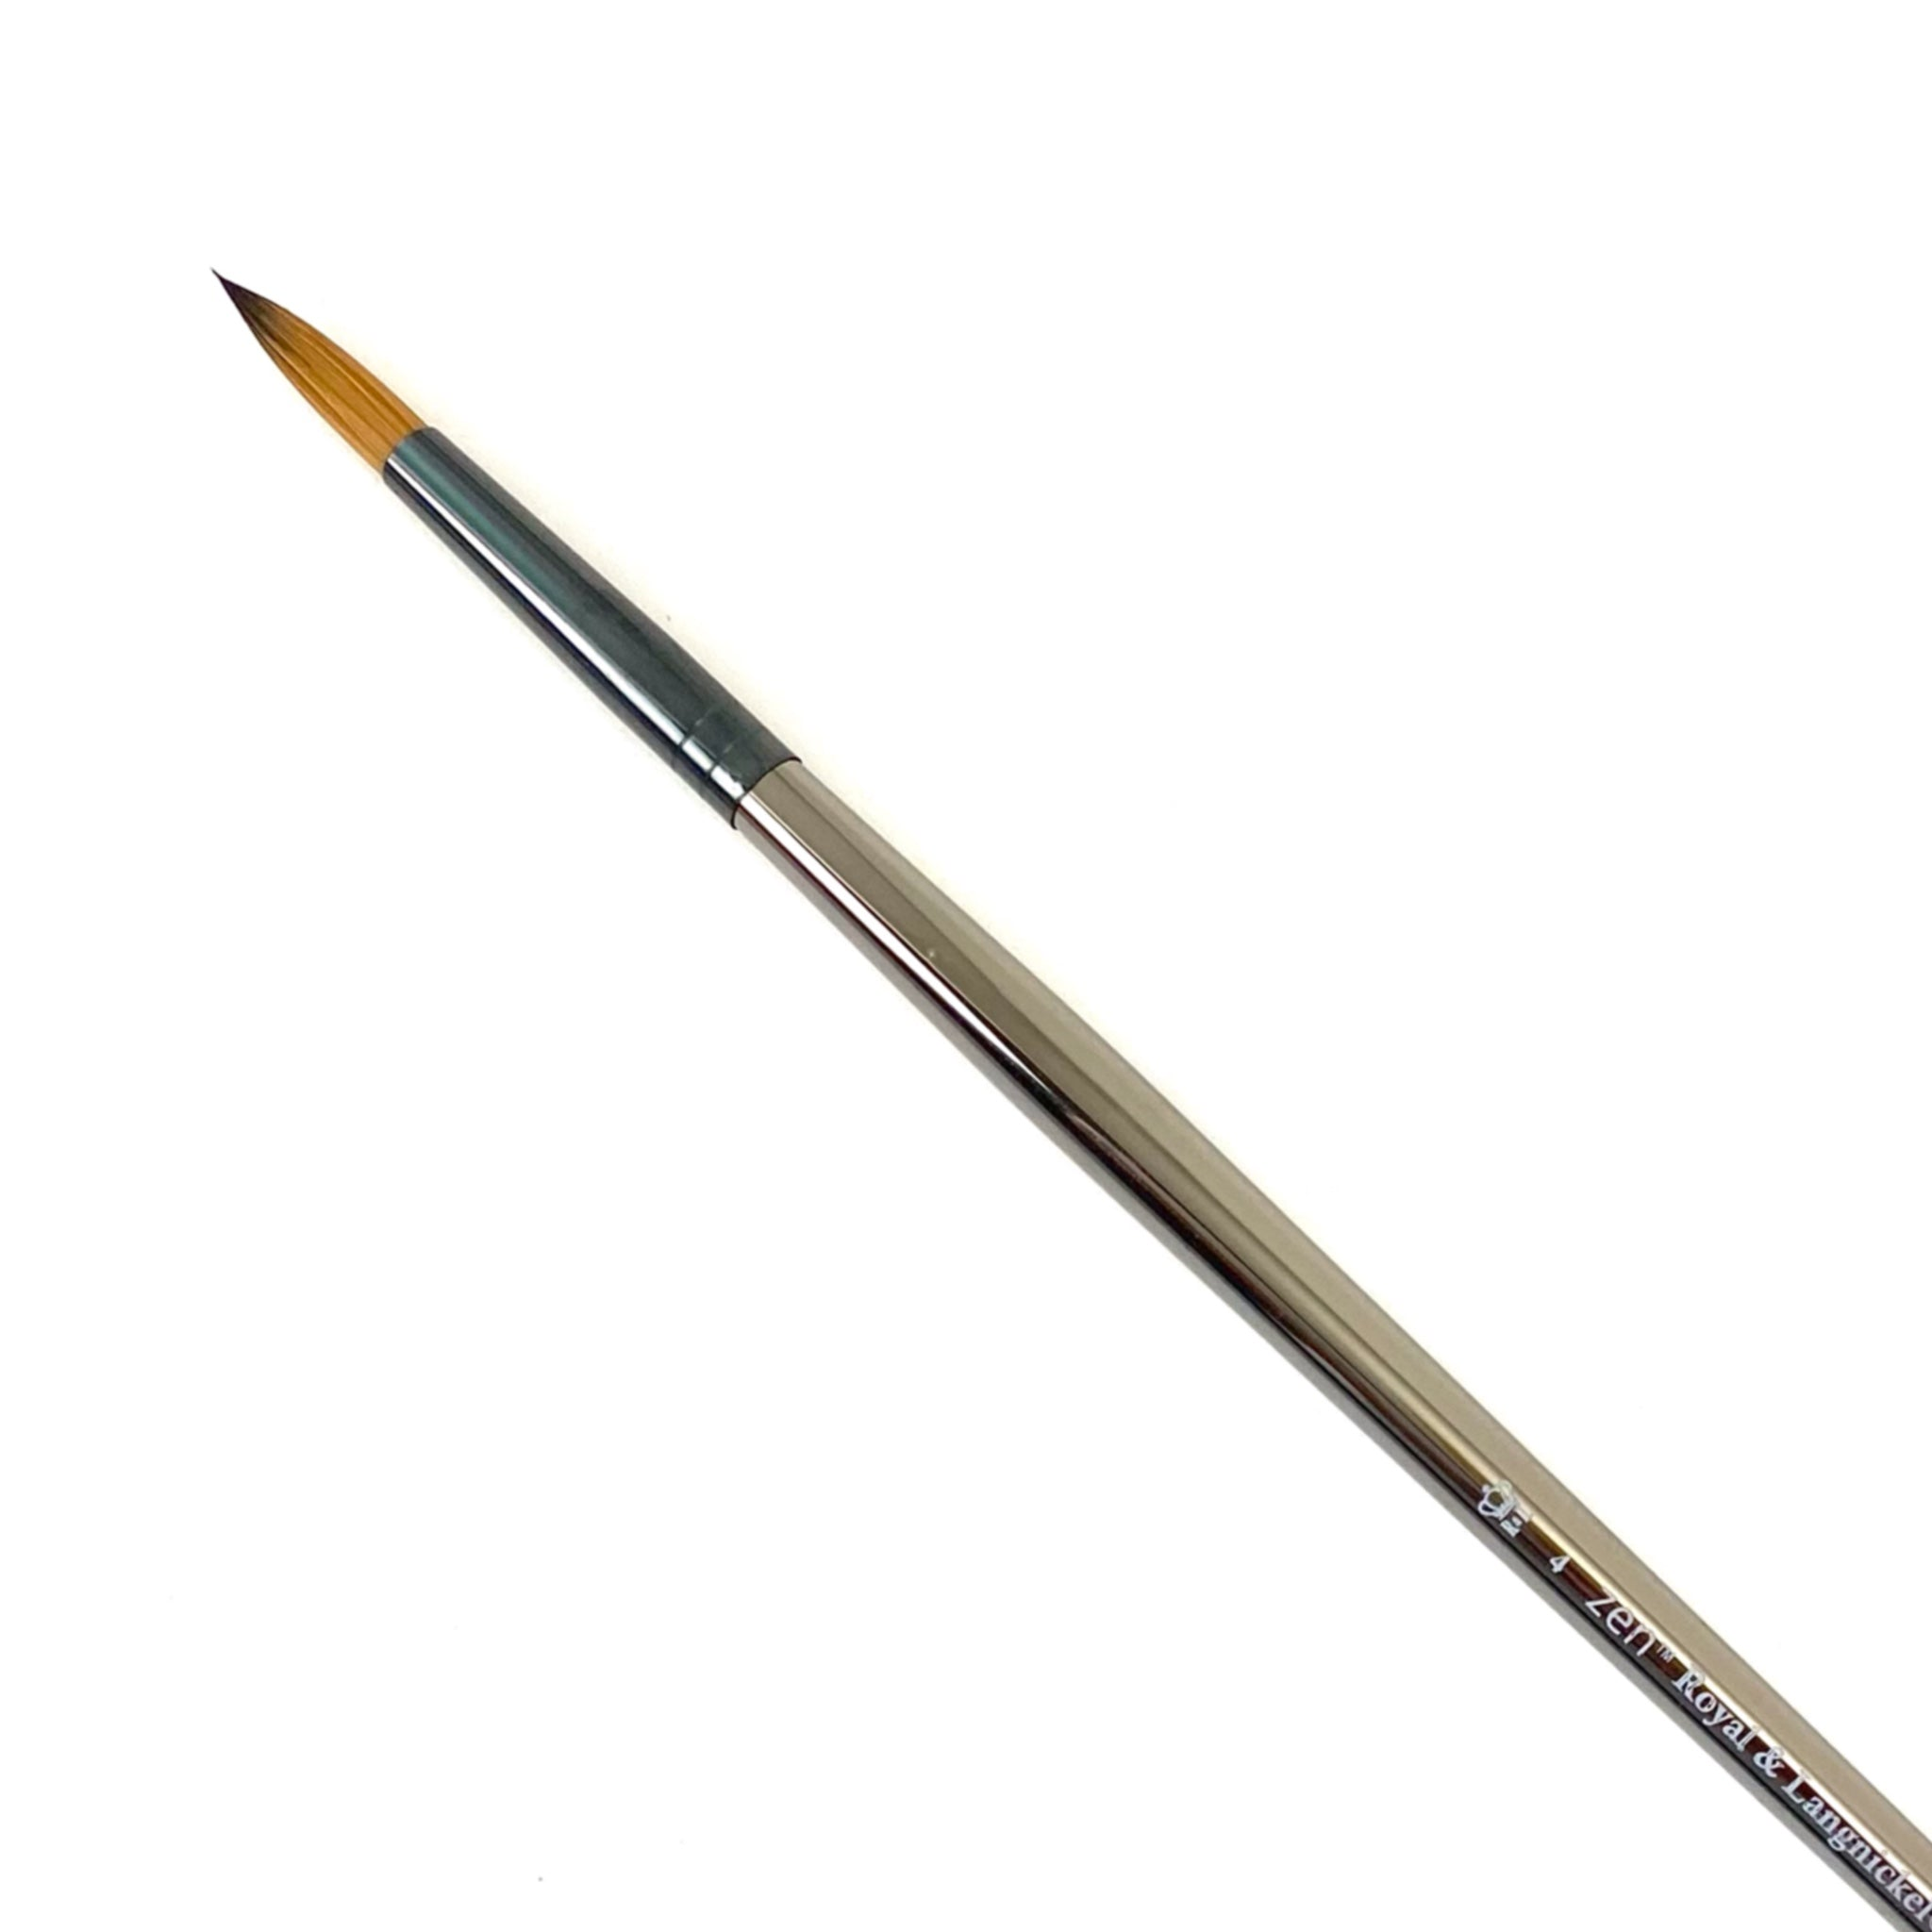 Royal & Langnickle Zen Long Handle Brushes - 43 Series - Round / 4 by Royal & Langnickle - K. A. Artist Shop